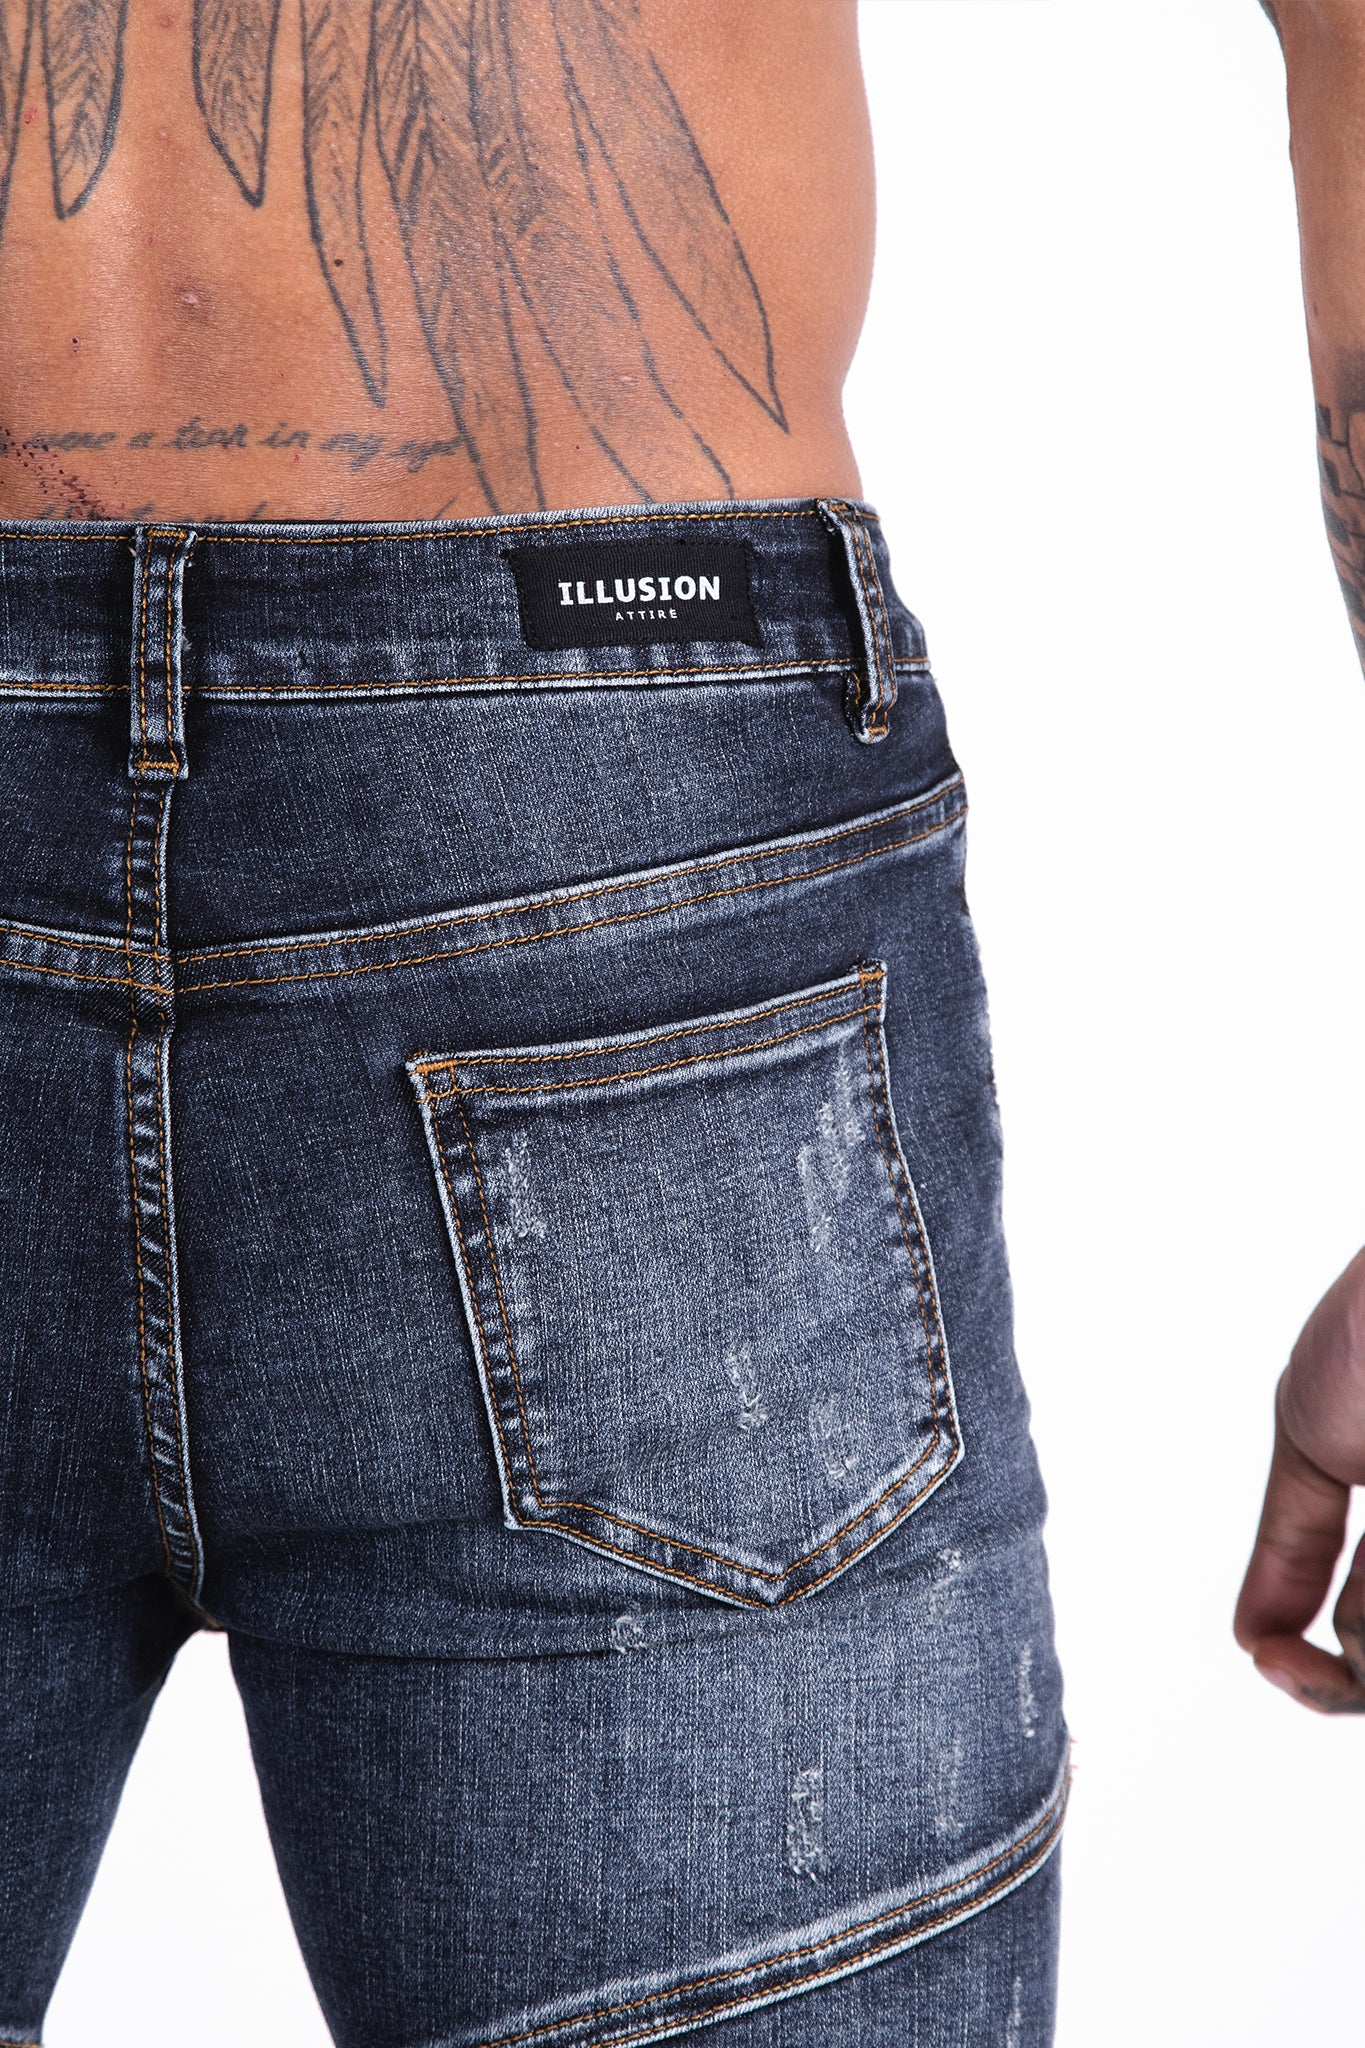 Ribbed Biker Jeans - Illusion Attire